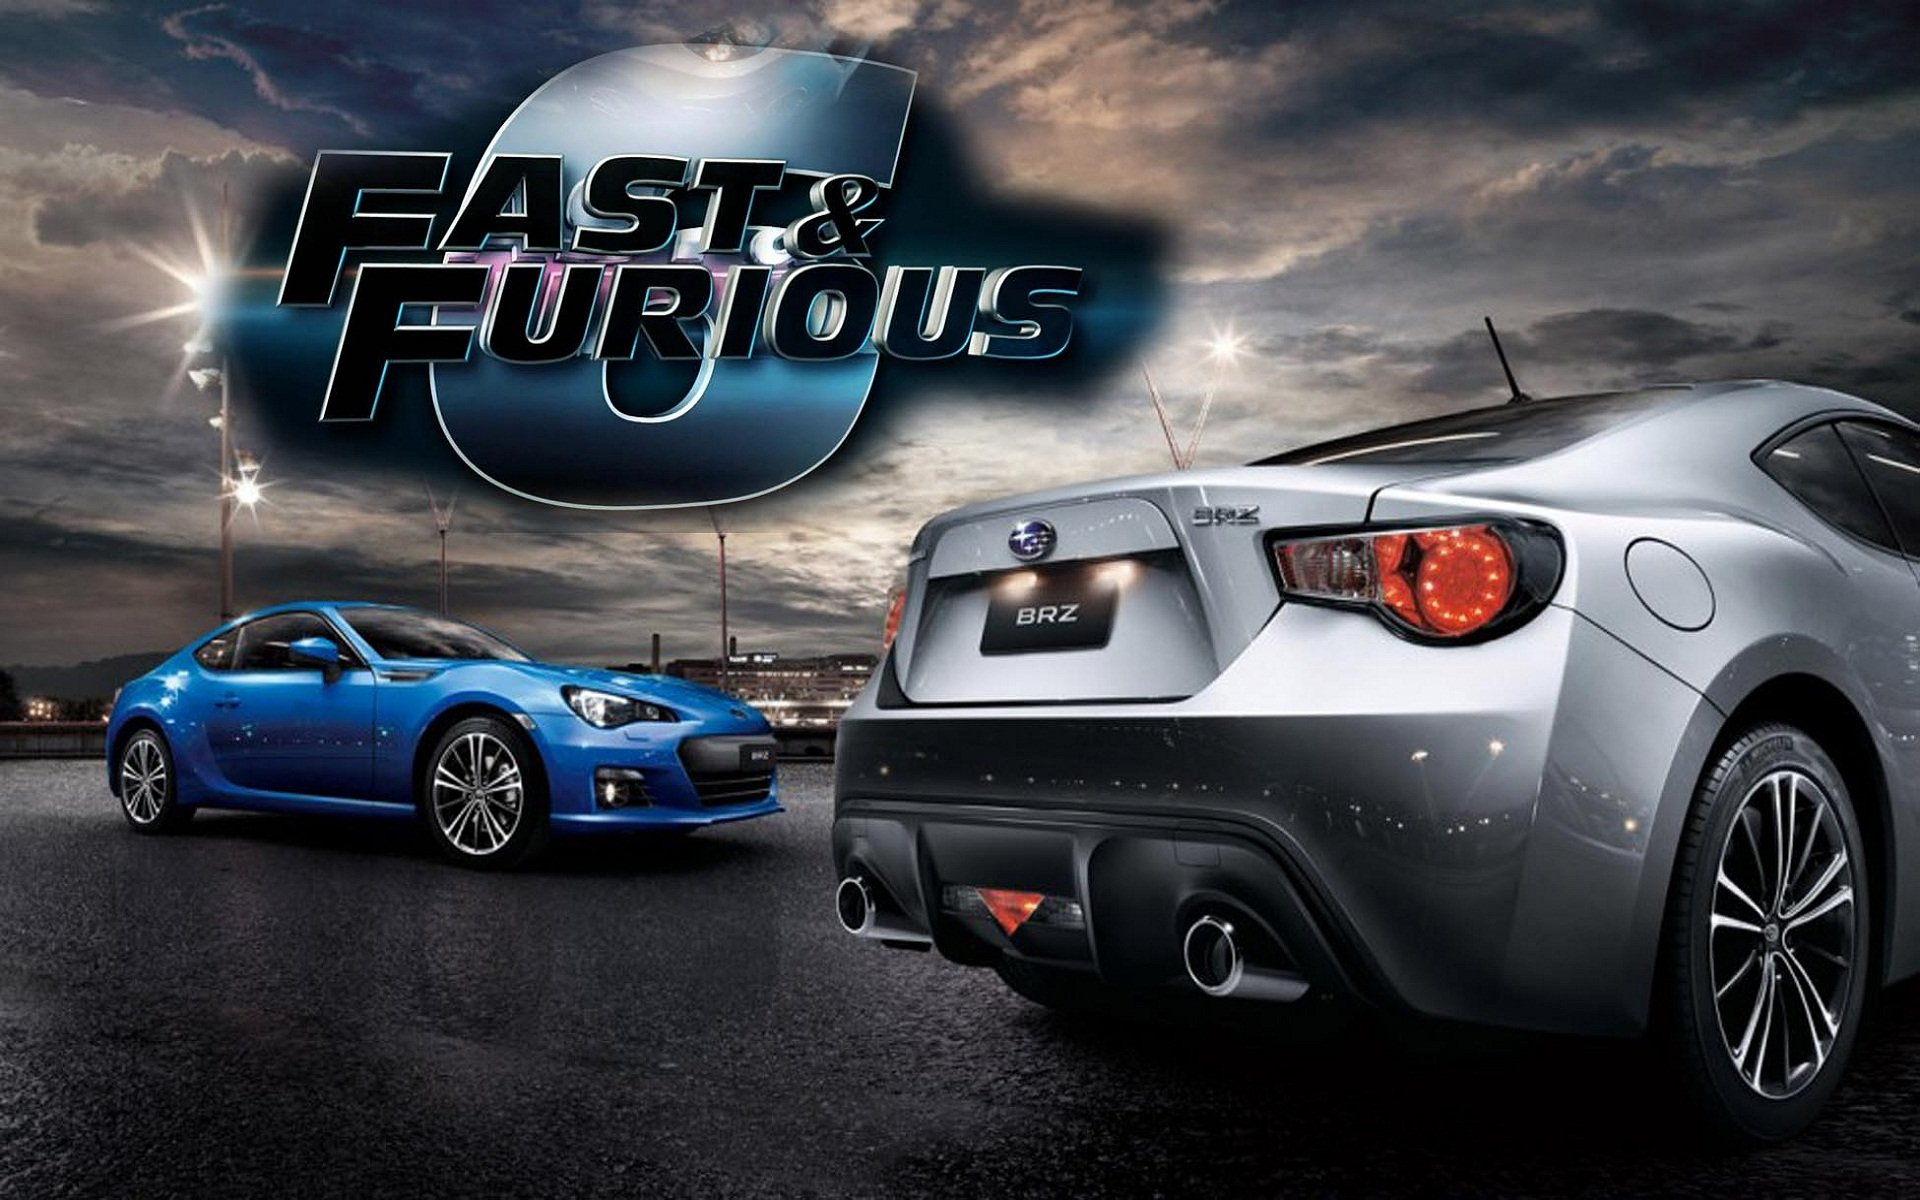 Fast and Furious wallpapers Movie News and Trailers 1920x1200